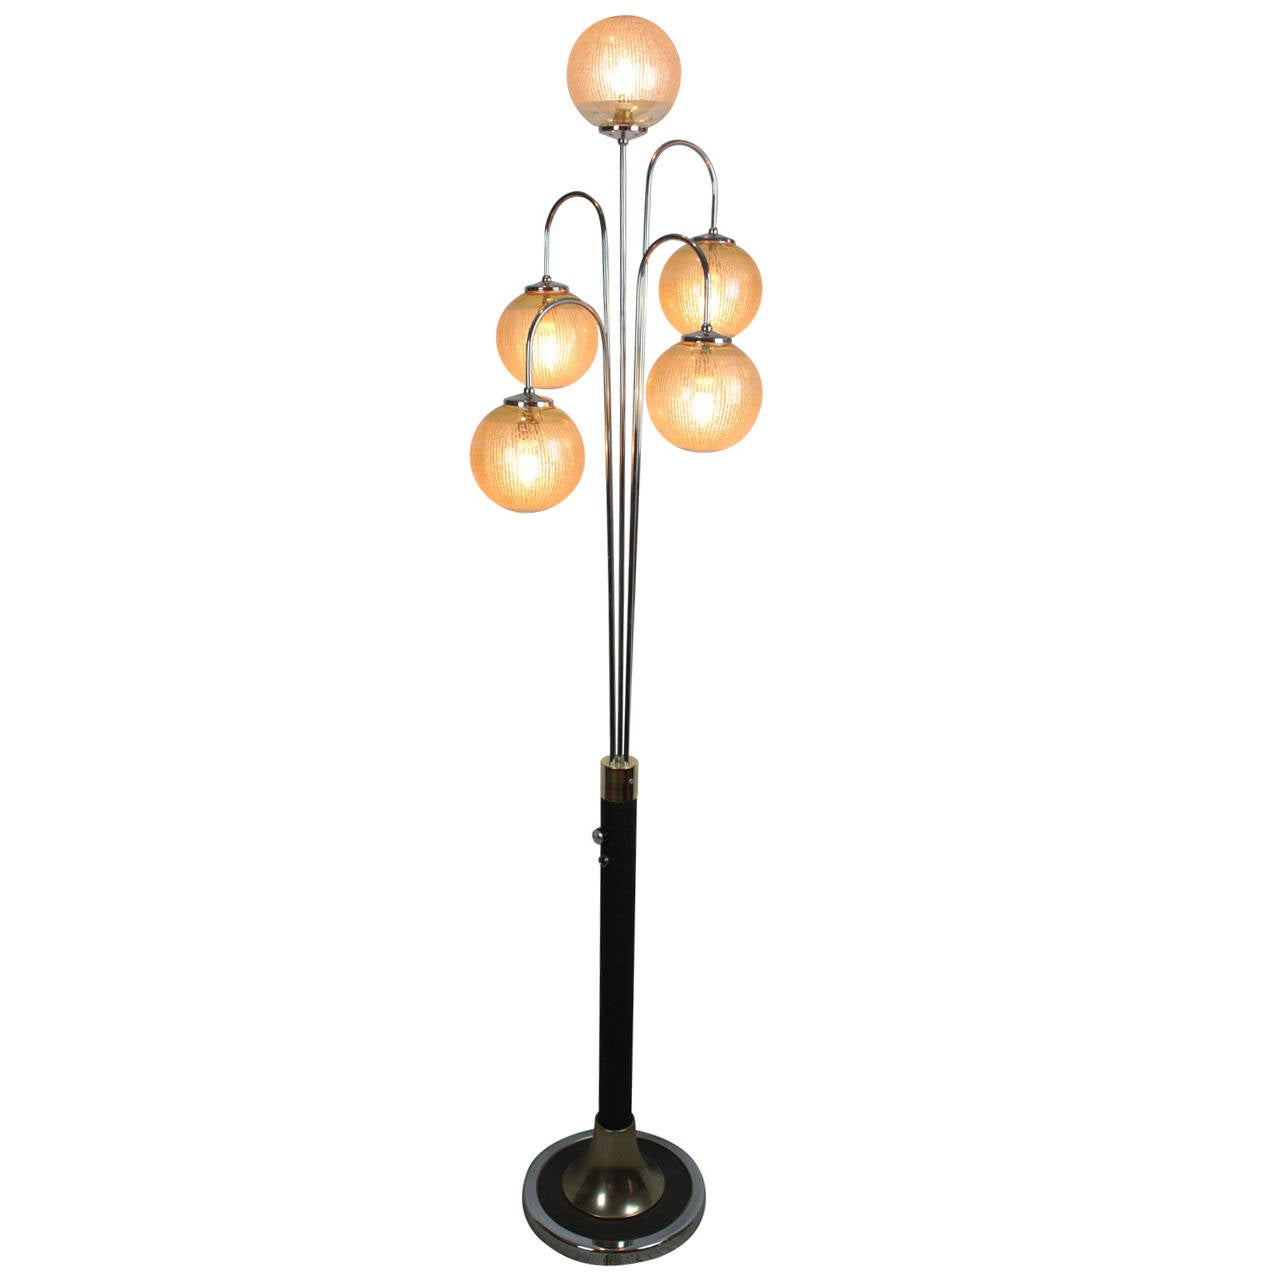 Mid-Century Spider Floor Lamp For Sale at 1stdibs